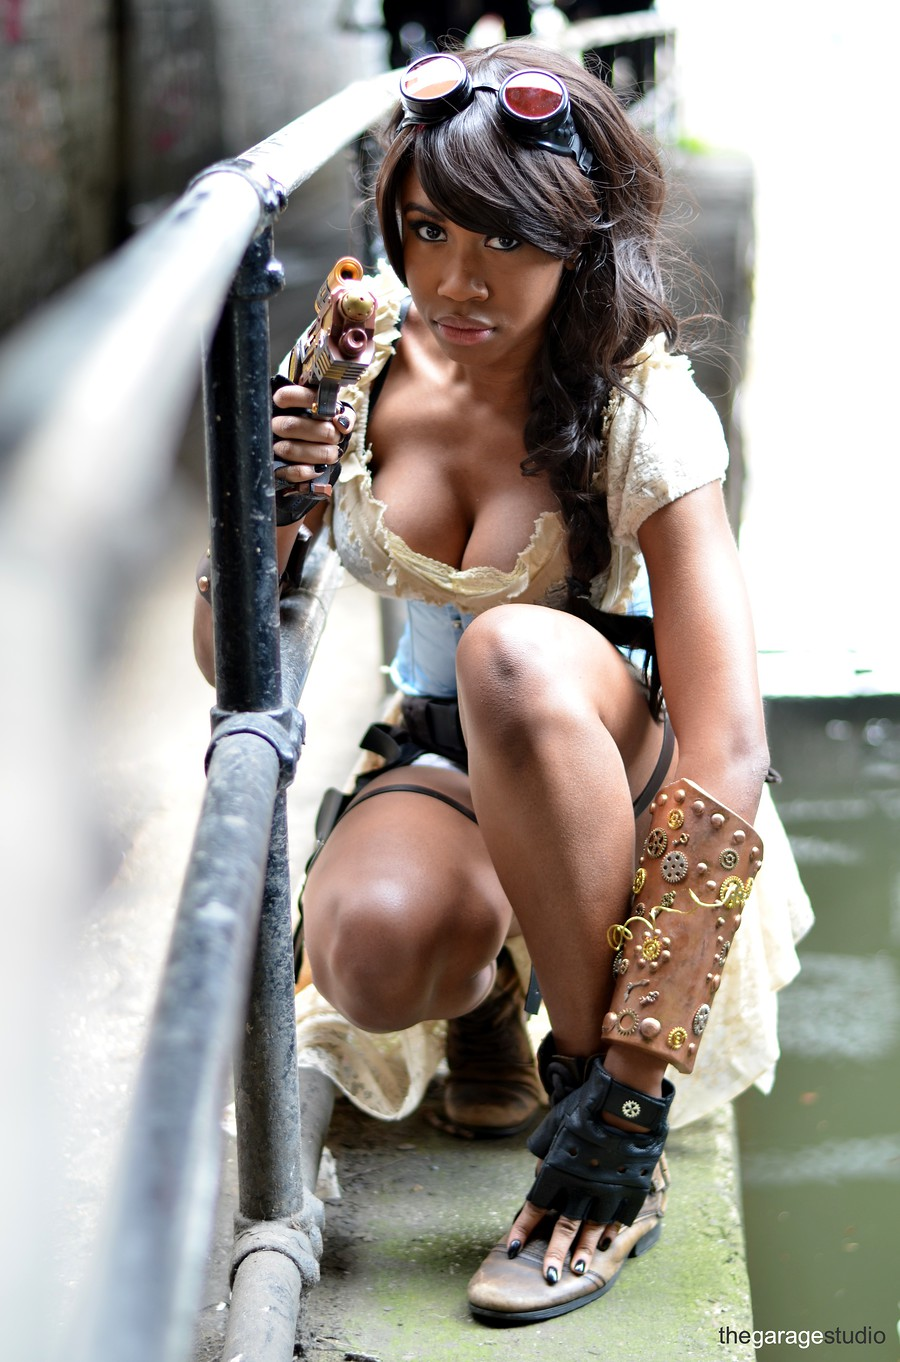 Steampunk Lara Croft / Photography by thegaragestudio / Uploaded 17th April 2015 @ 07:18 PM